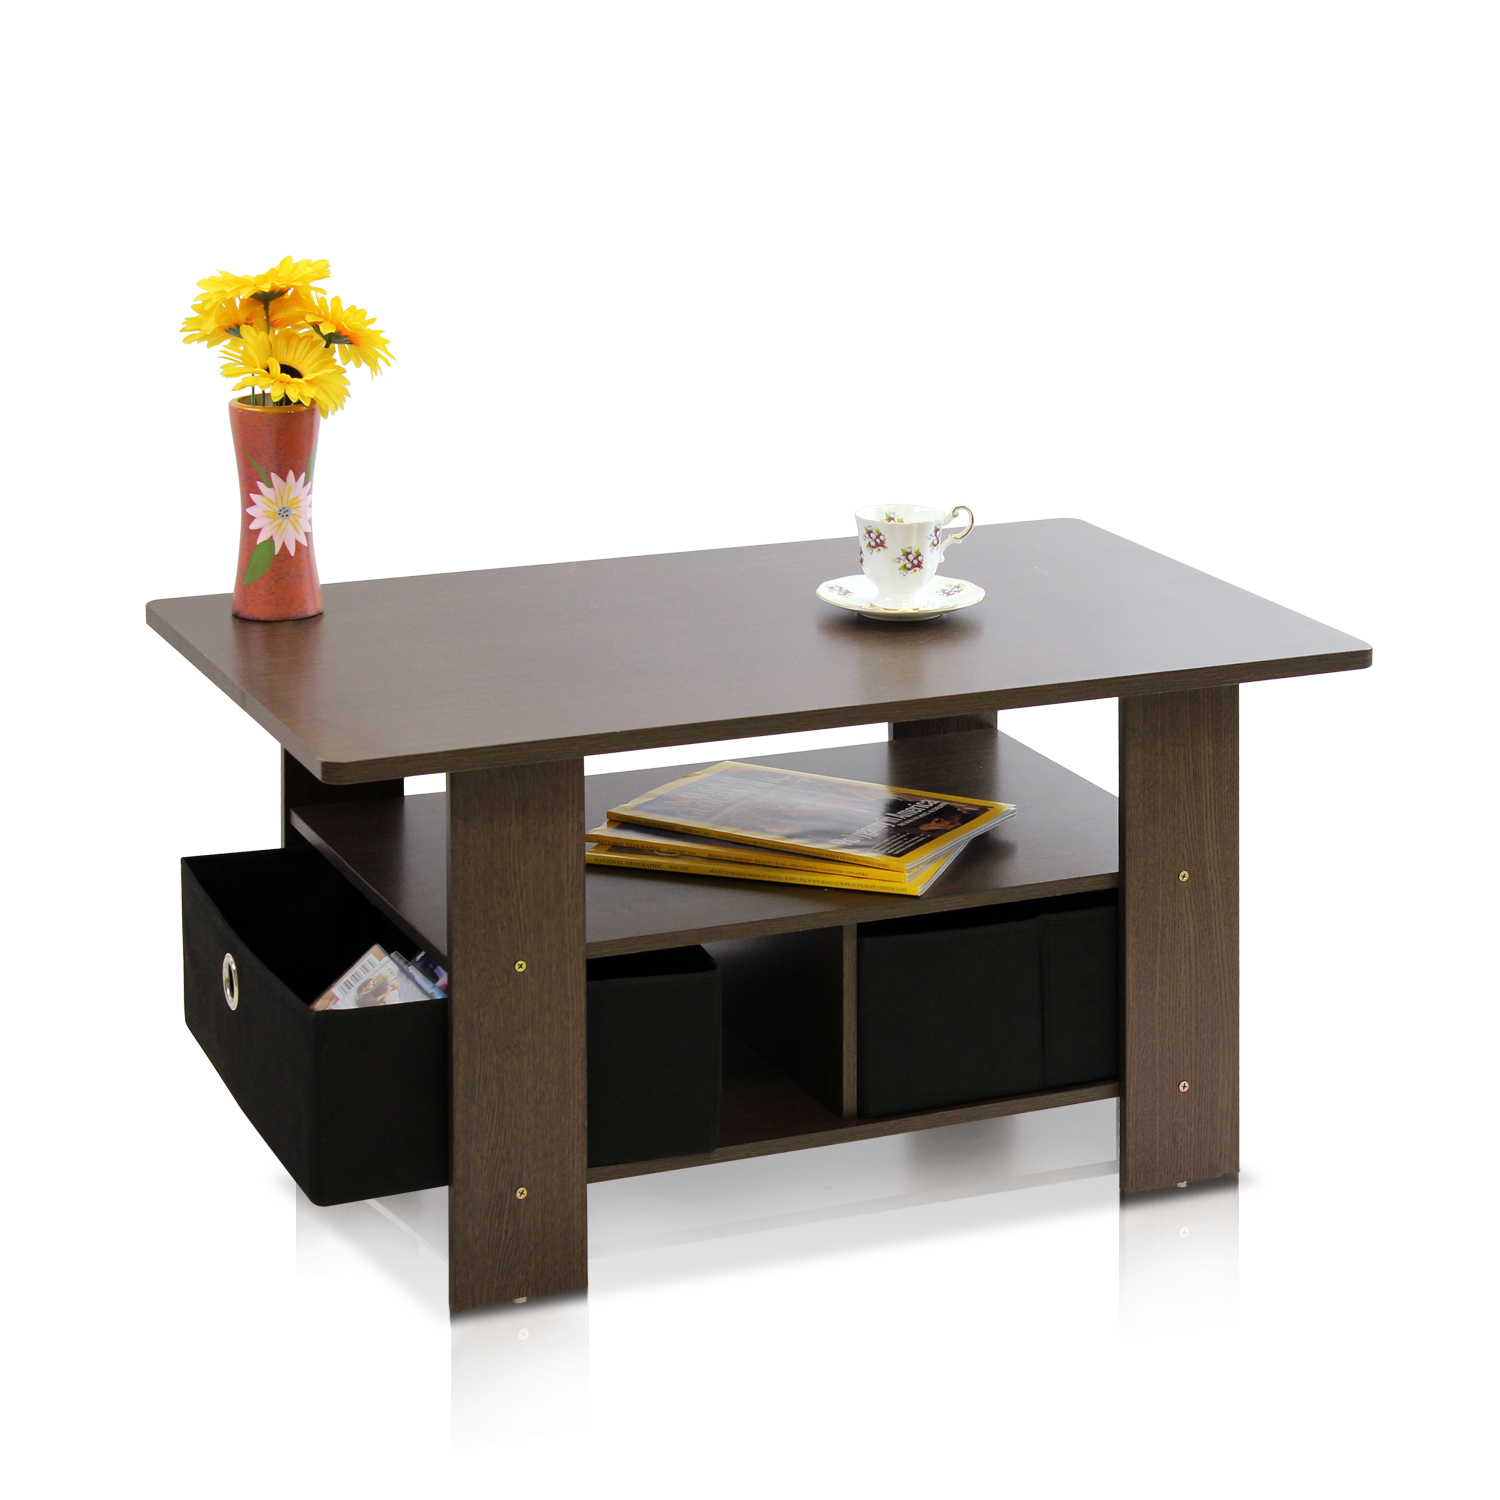 Petite Coffee Table with Foldable Bin Drawer Multiple Colors